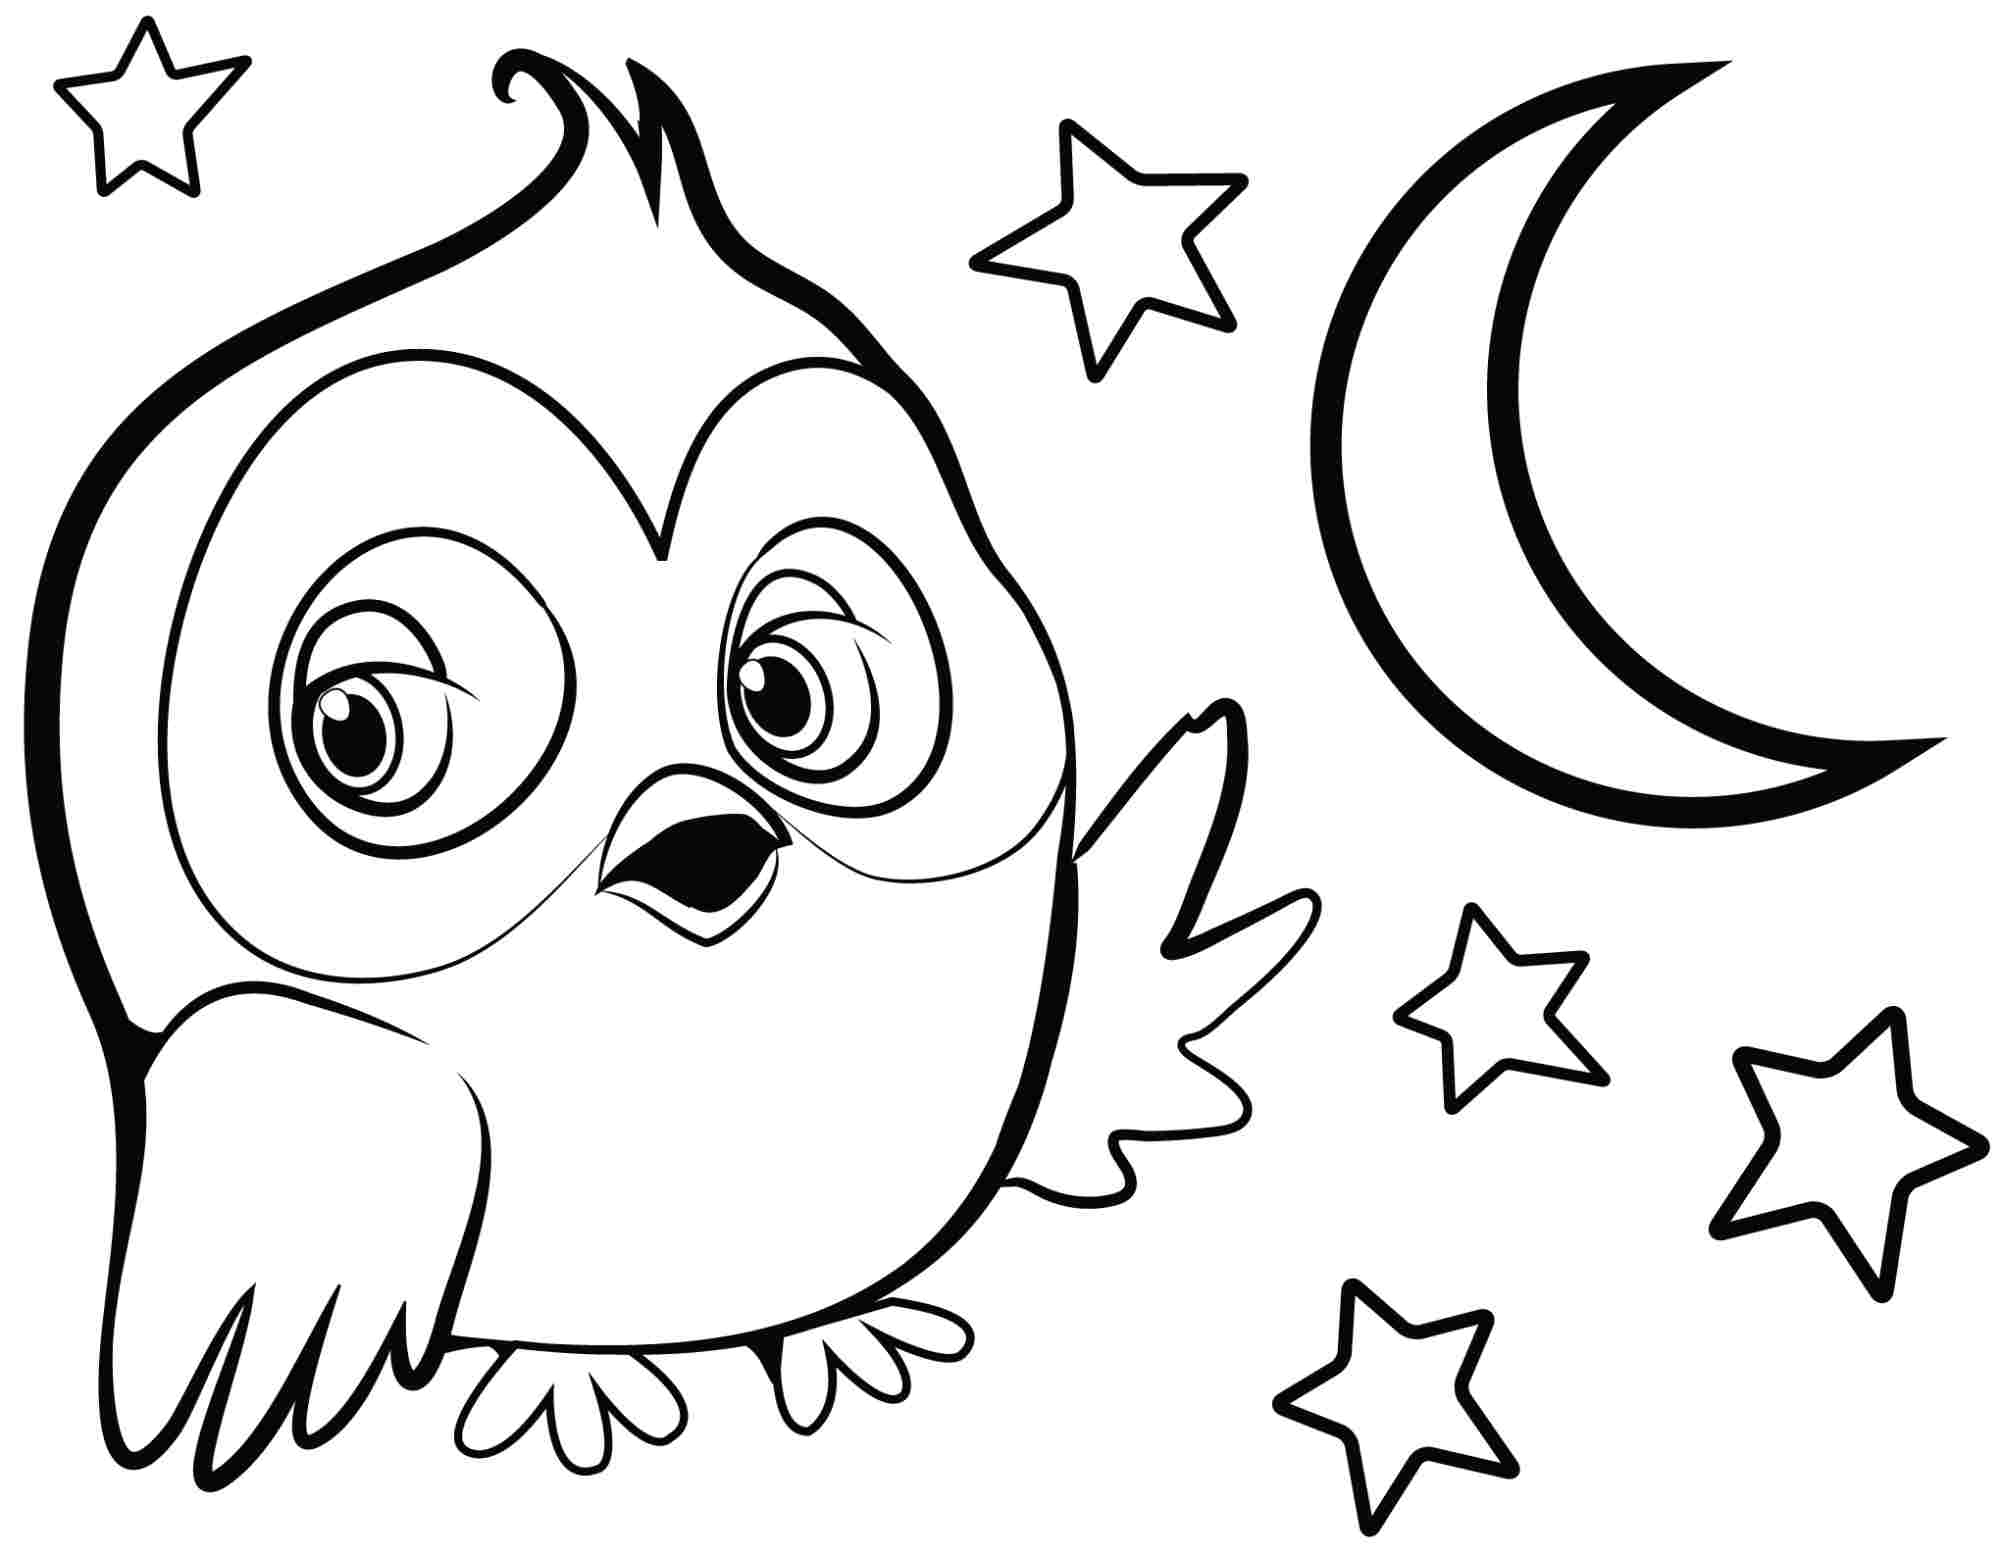 kids easy coloring book easy coloring pages best coloring pages for kids kids easy book coloring